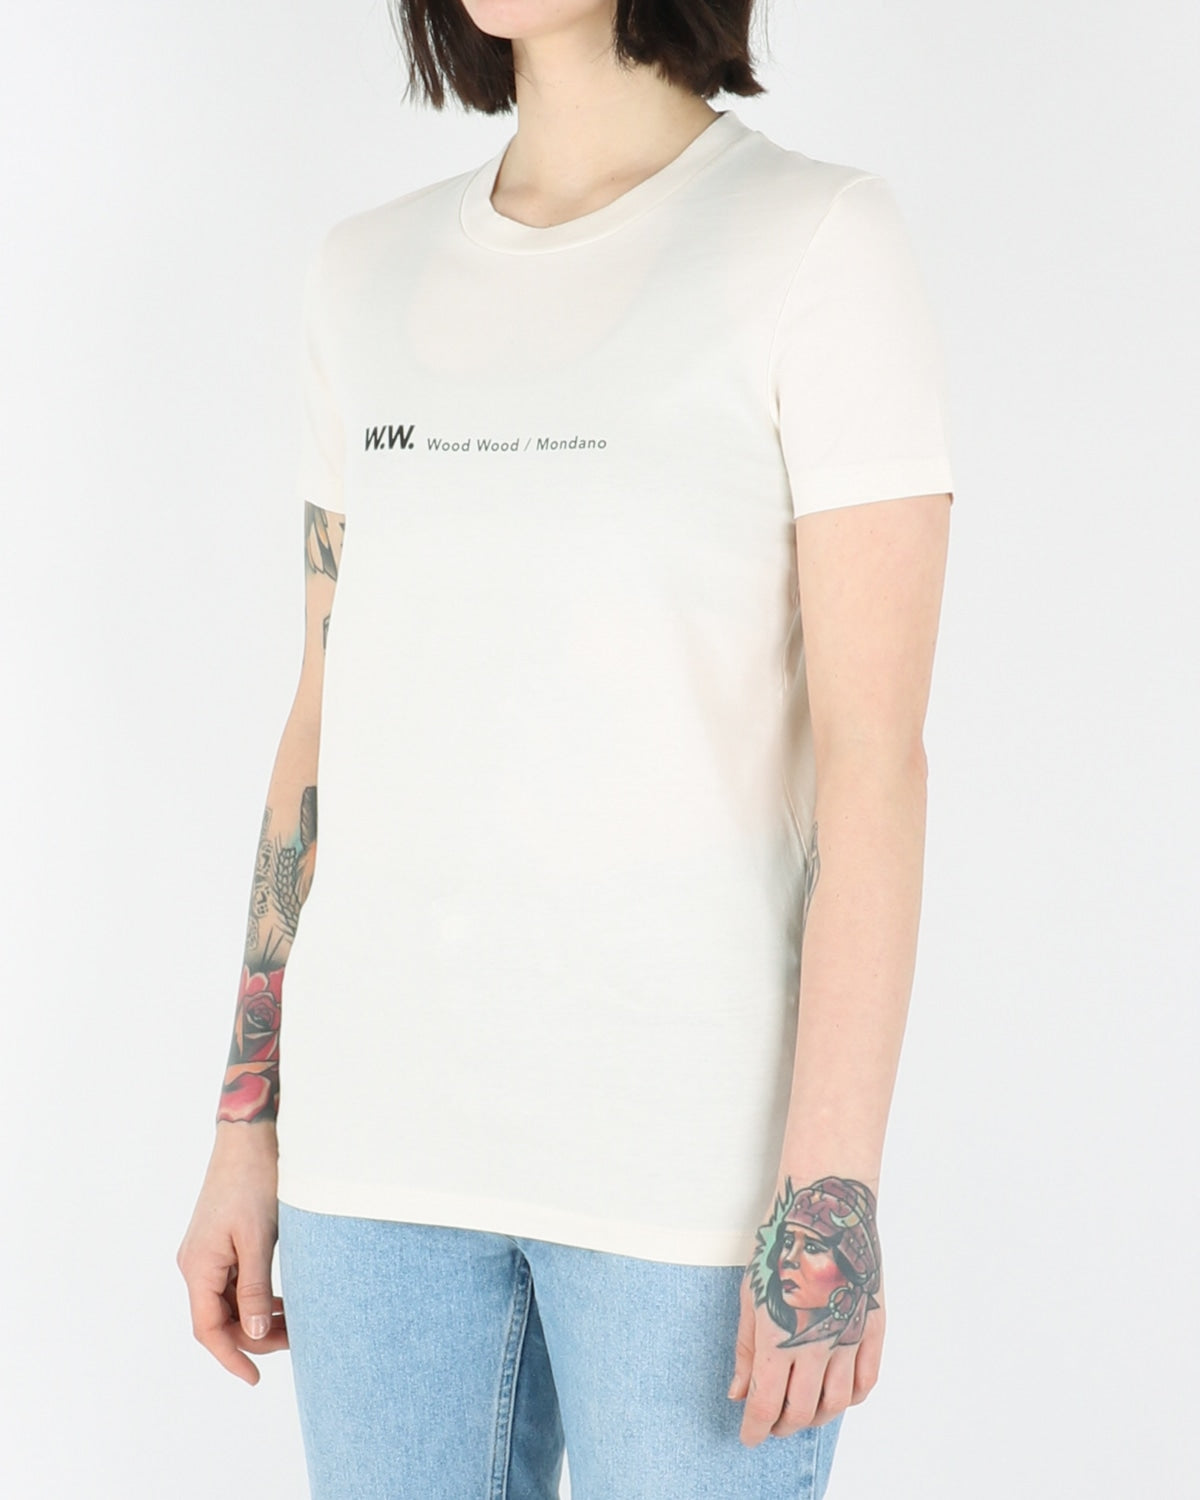 wood wood_eden t-shirt_offwhite_view_2_3